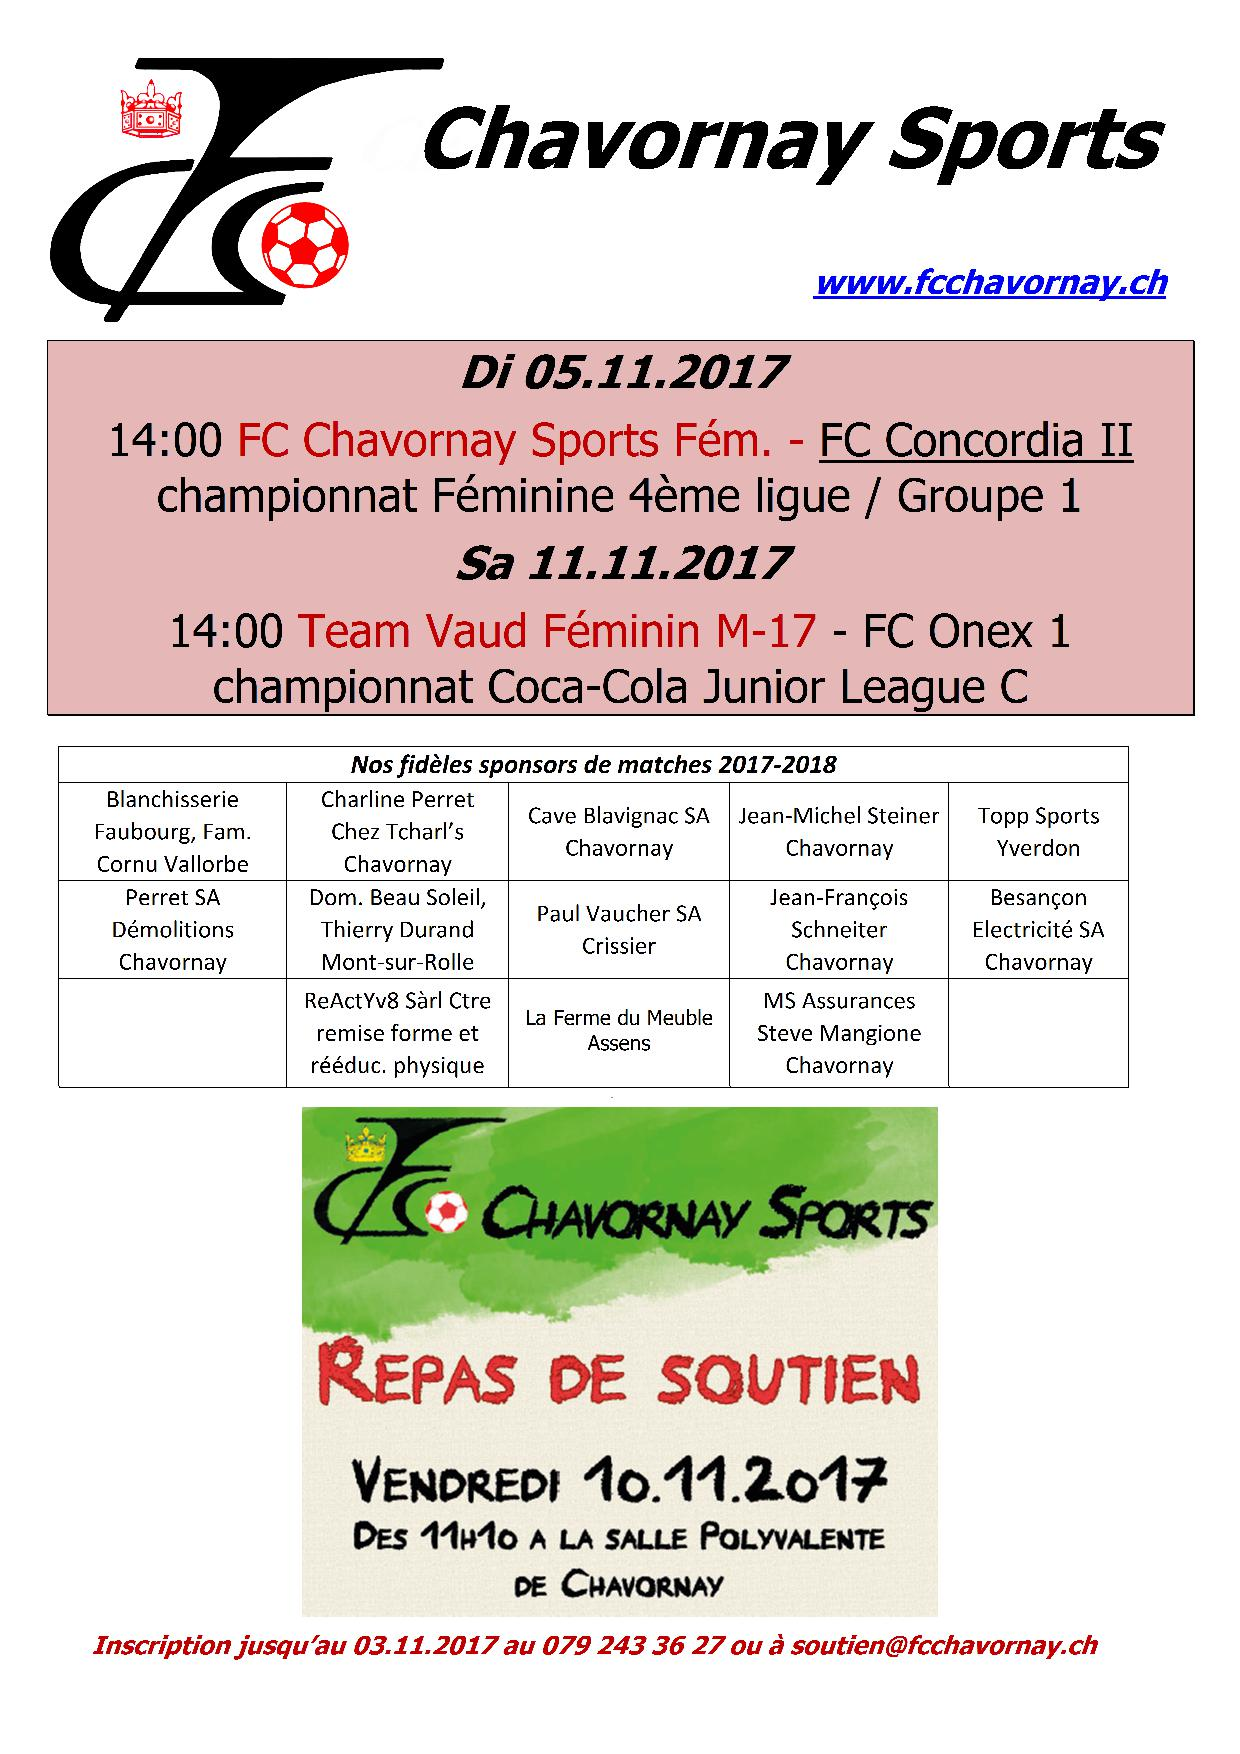 Rencontres 2016 chavornay